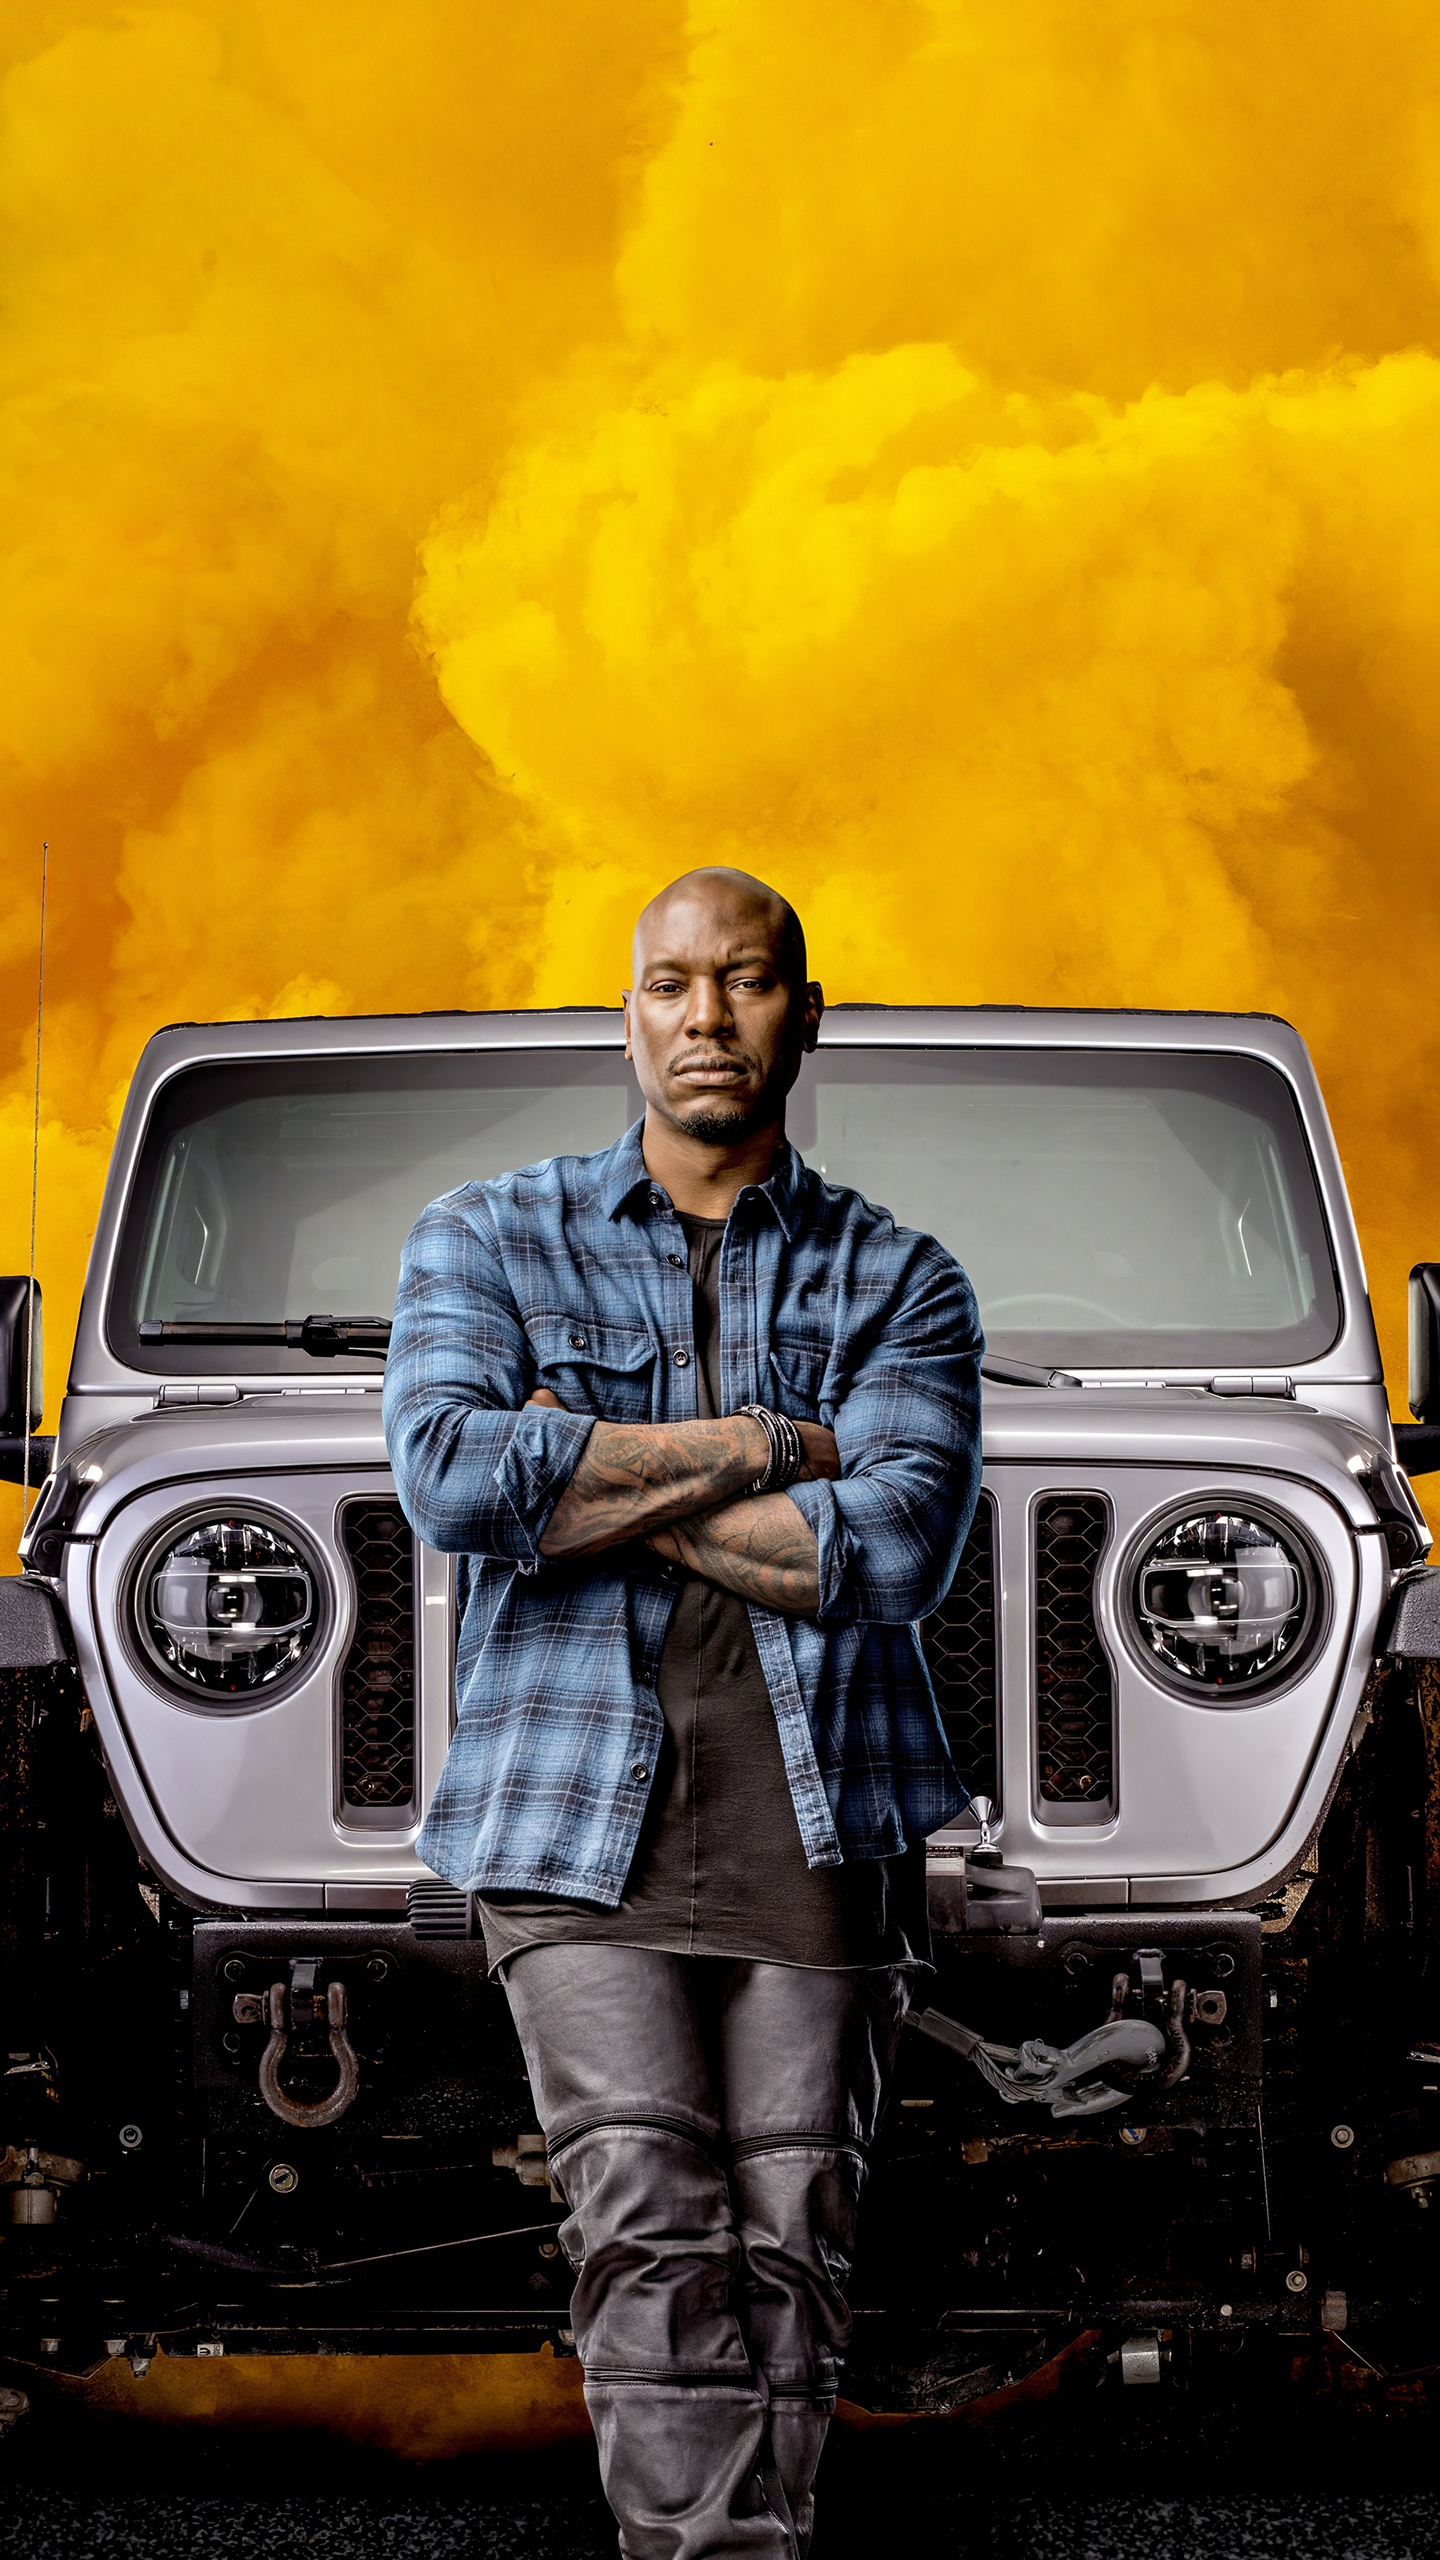 roman-pearce-in-fast-and-furious-9-2020-movie-74.jpg